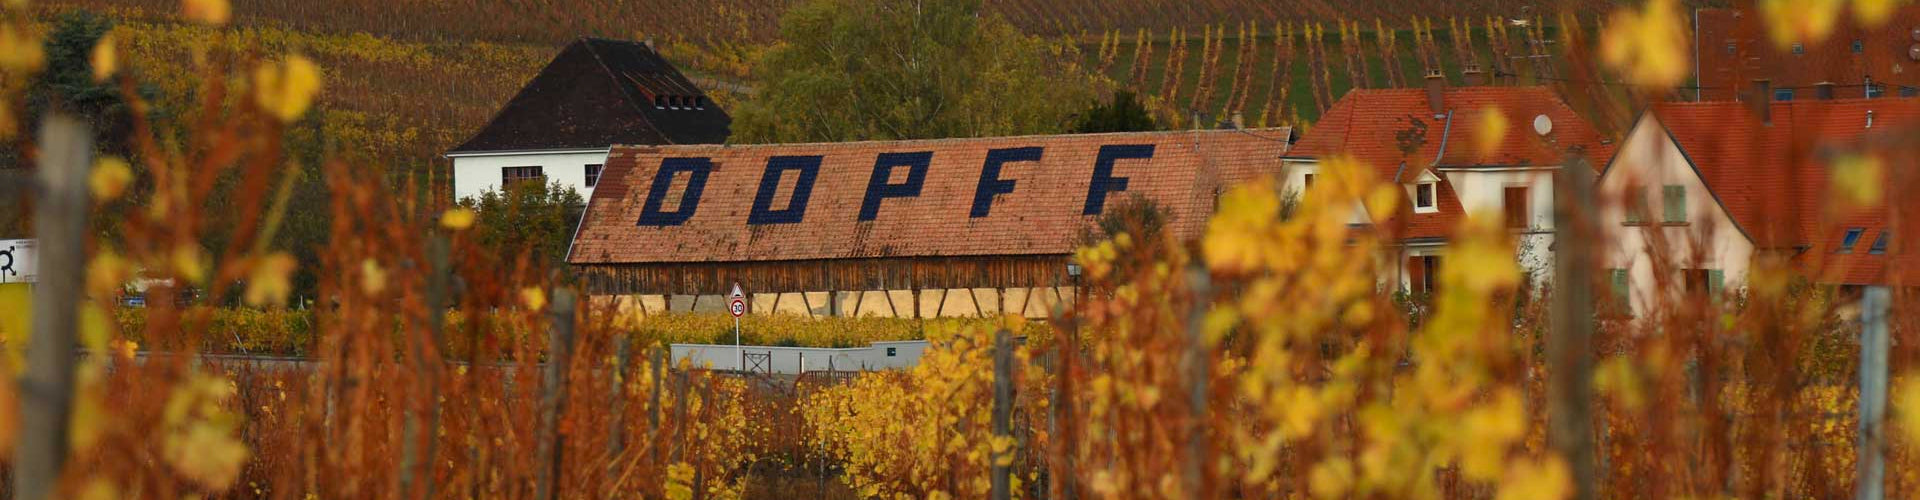 Roof of Dopff Winery through Vineyards